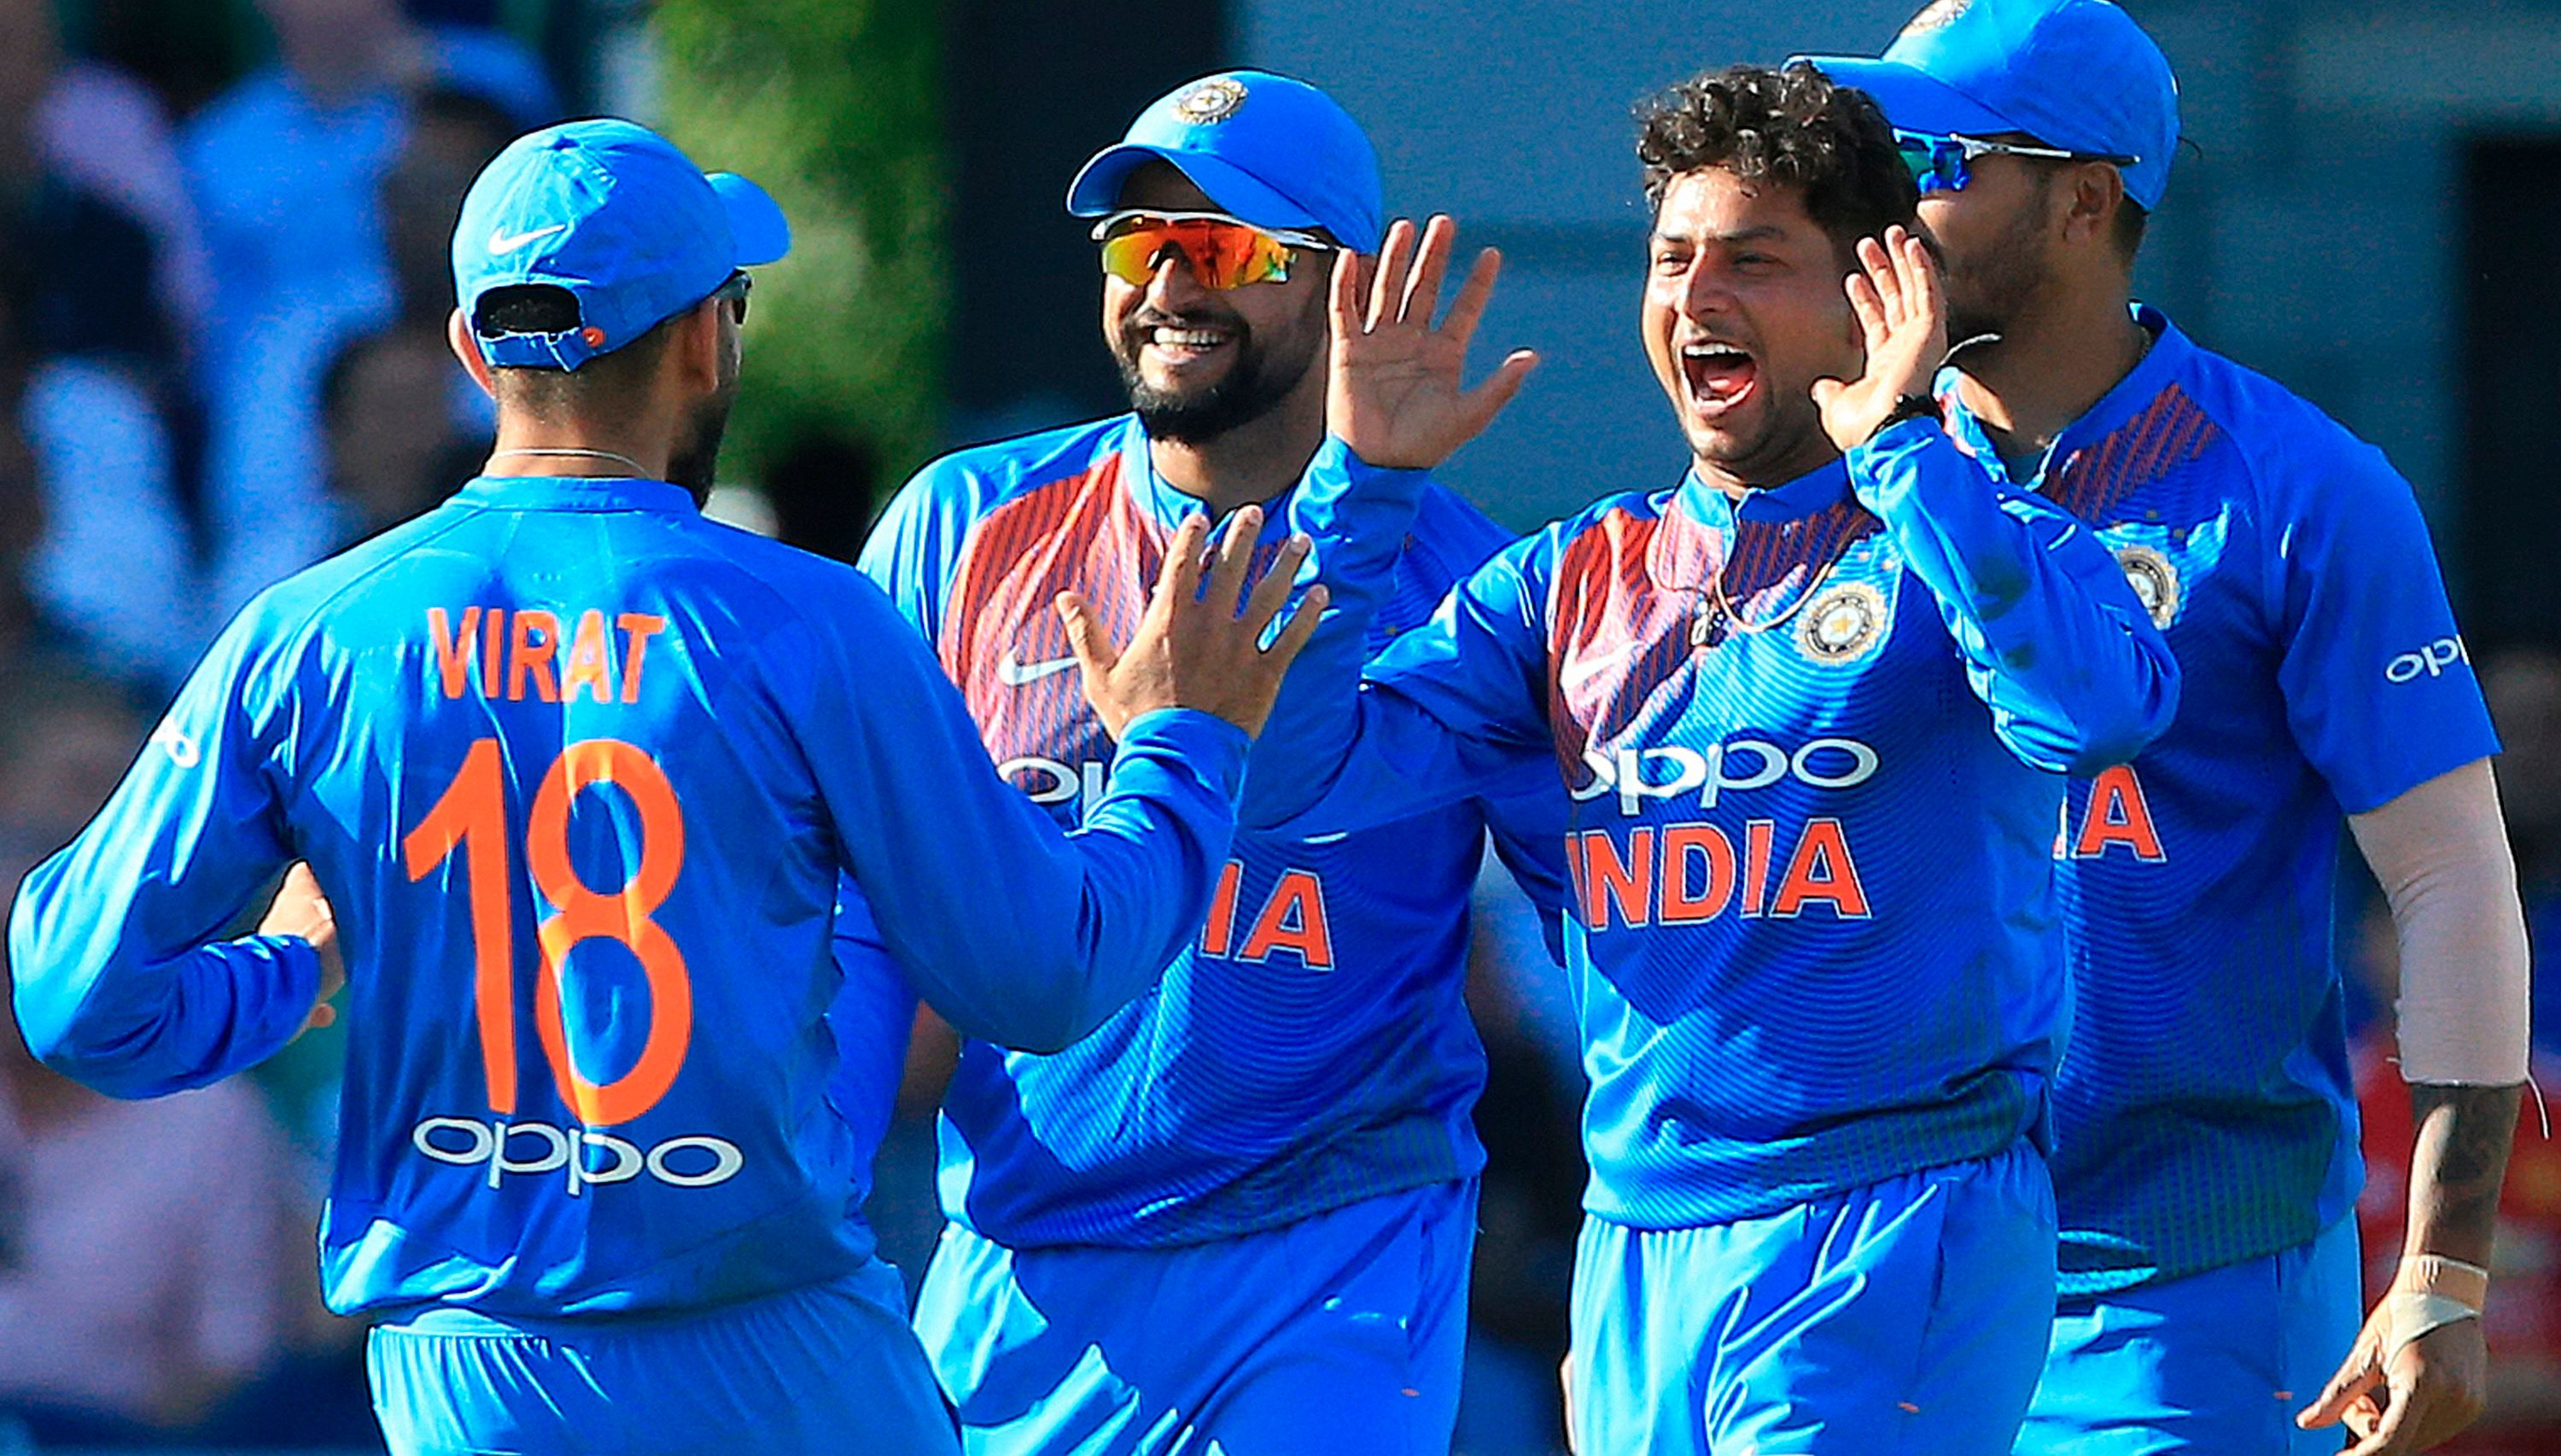 Kuldeep Yadav picked up 21 wickets in just 9 T20Is in 2018 (photo - getty)